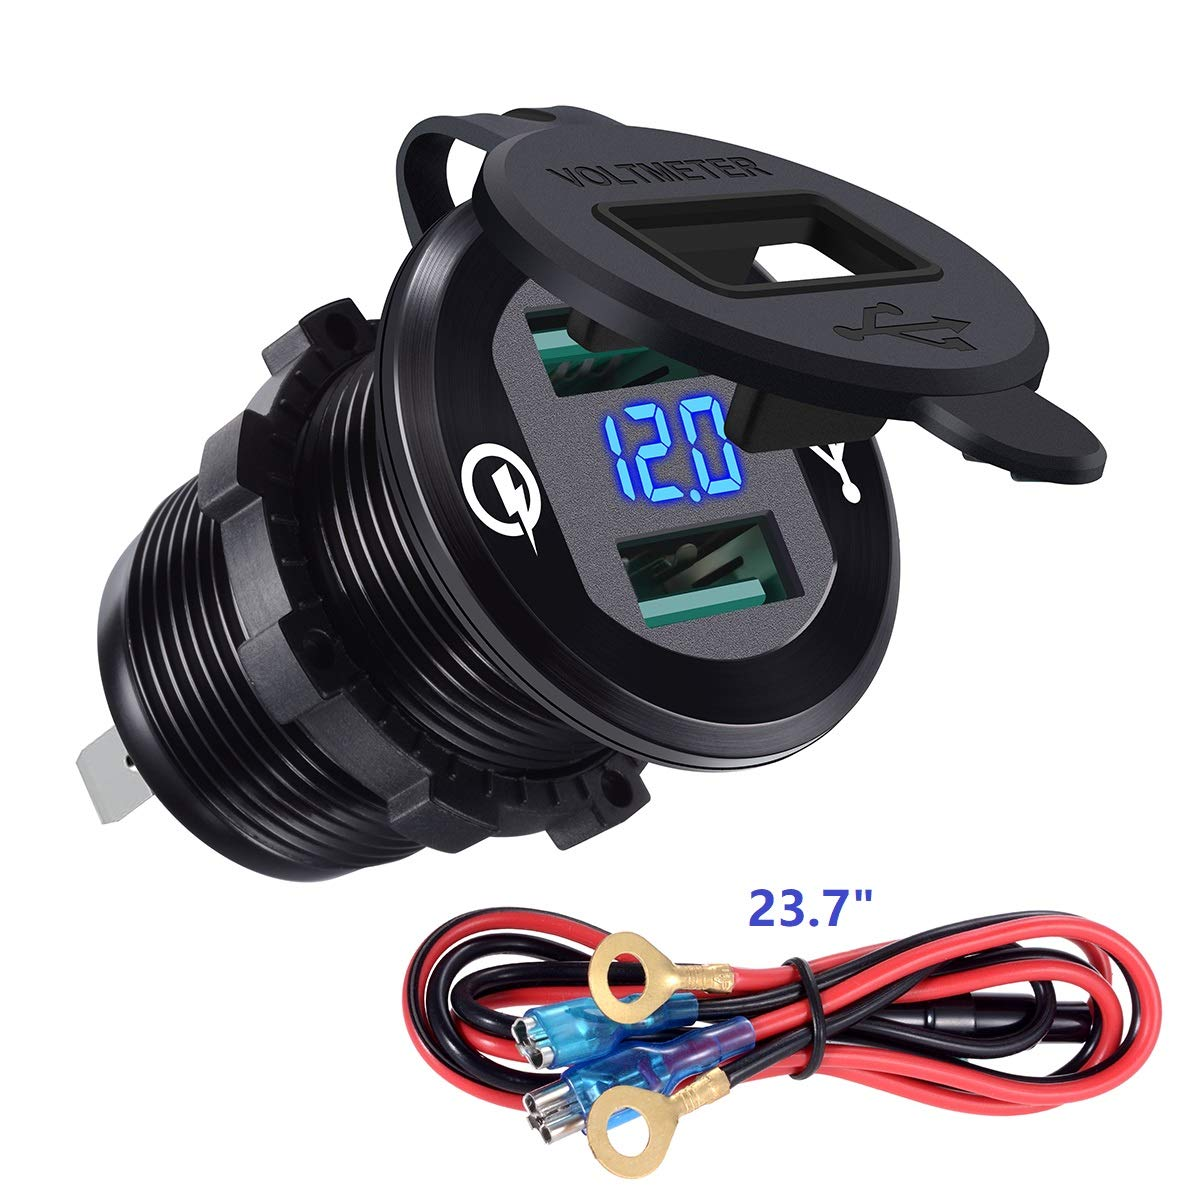 YonHan Quick Charge 3.0 Dual USB Charger Socket, Waterproof Aluminum Power Outlet Fast Charge with LED Voltmeter & Wire Fuse DIY Kit for 12V/24V Car Boat Marine ATV Bus Truck and More